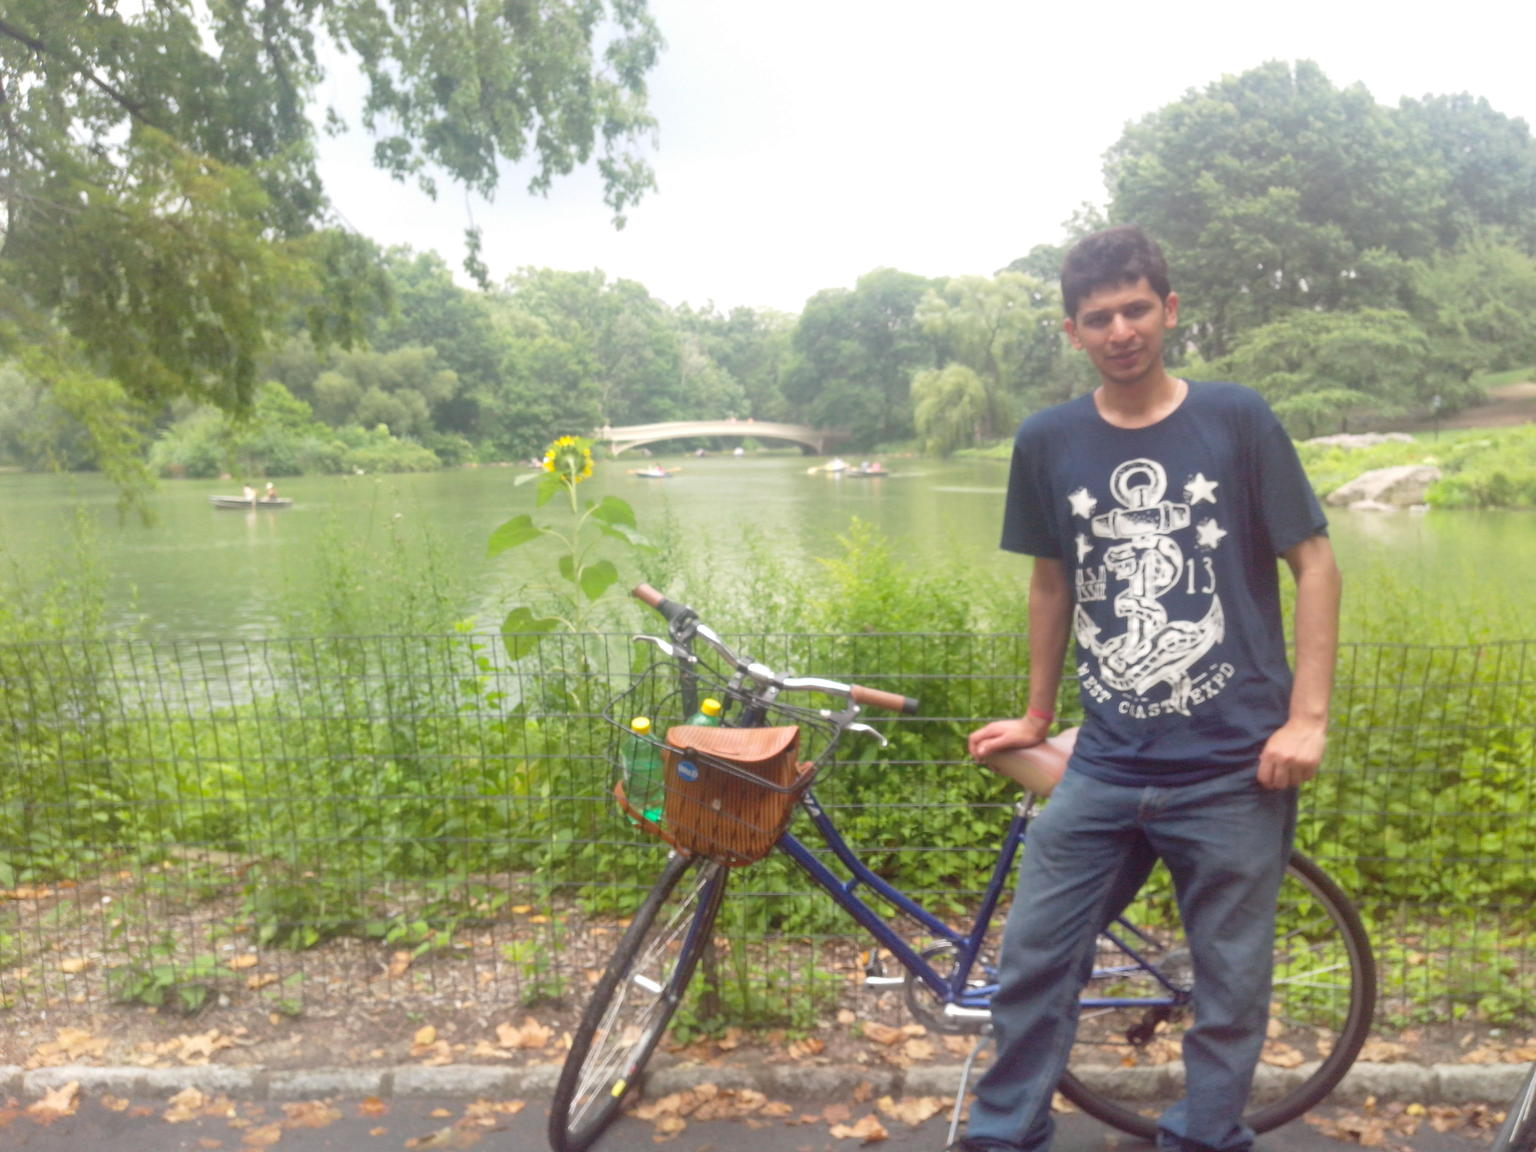 Best bike ride experience ever in Central Park,NYC !!!